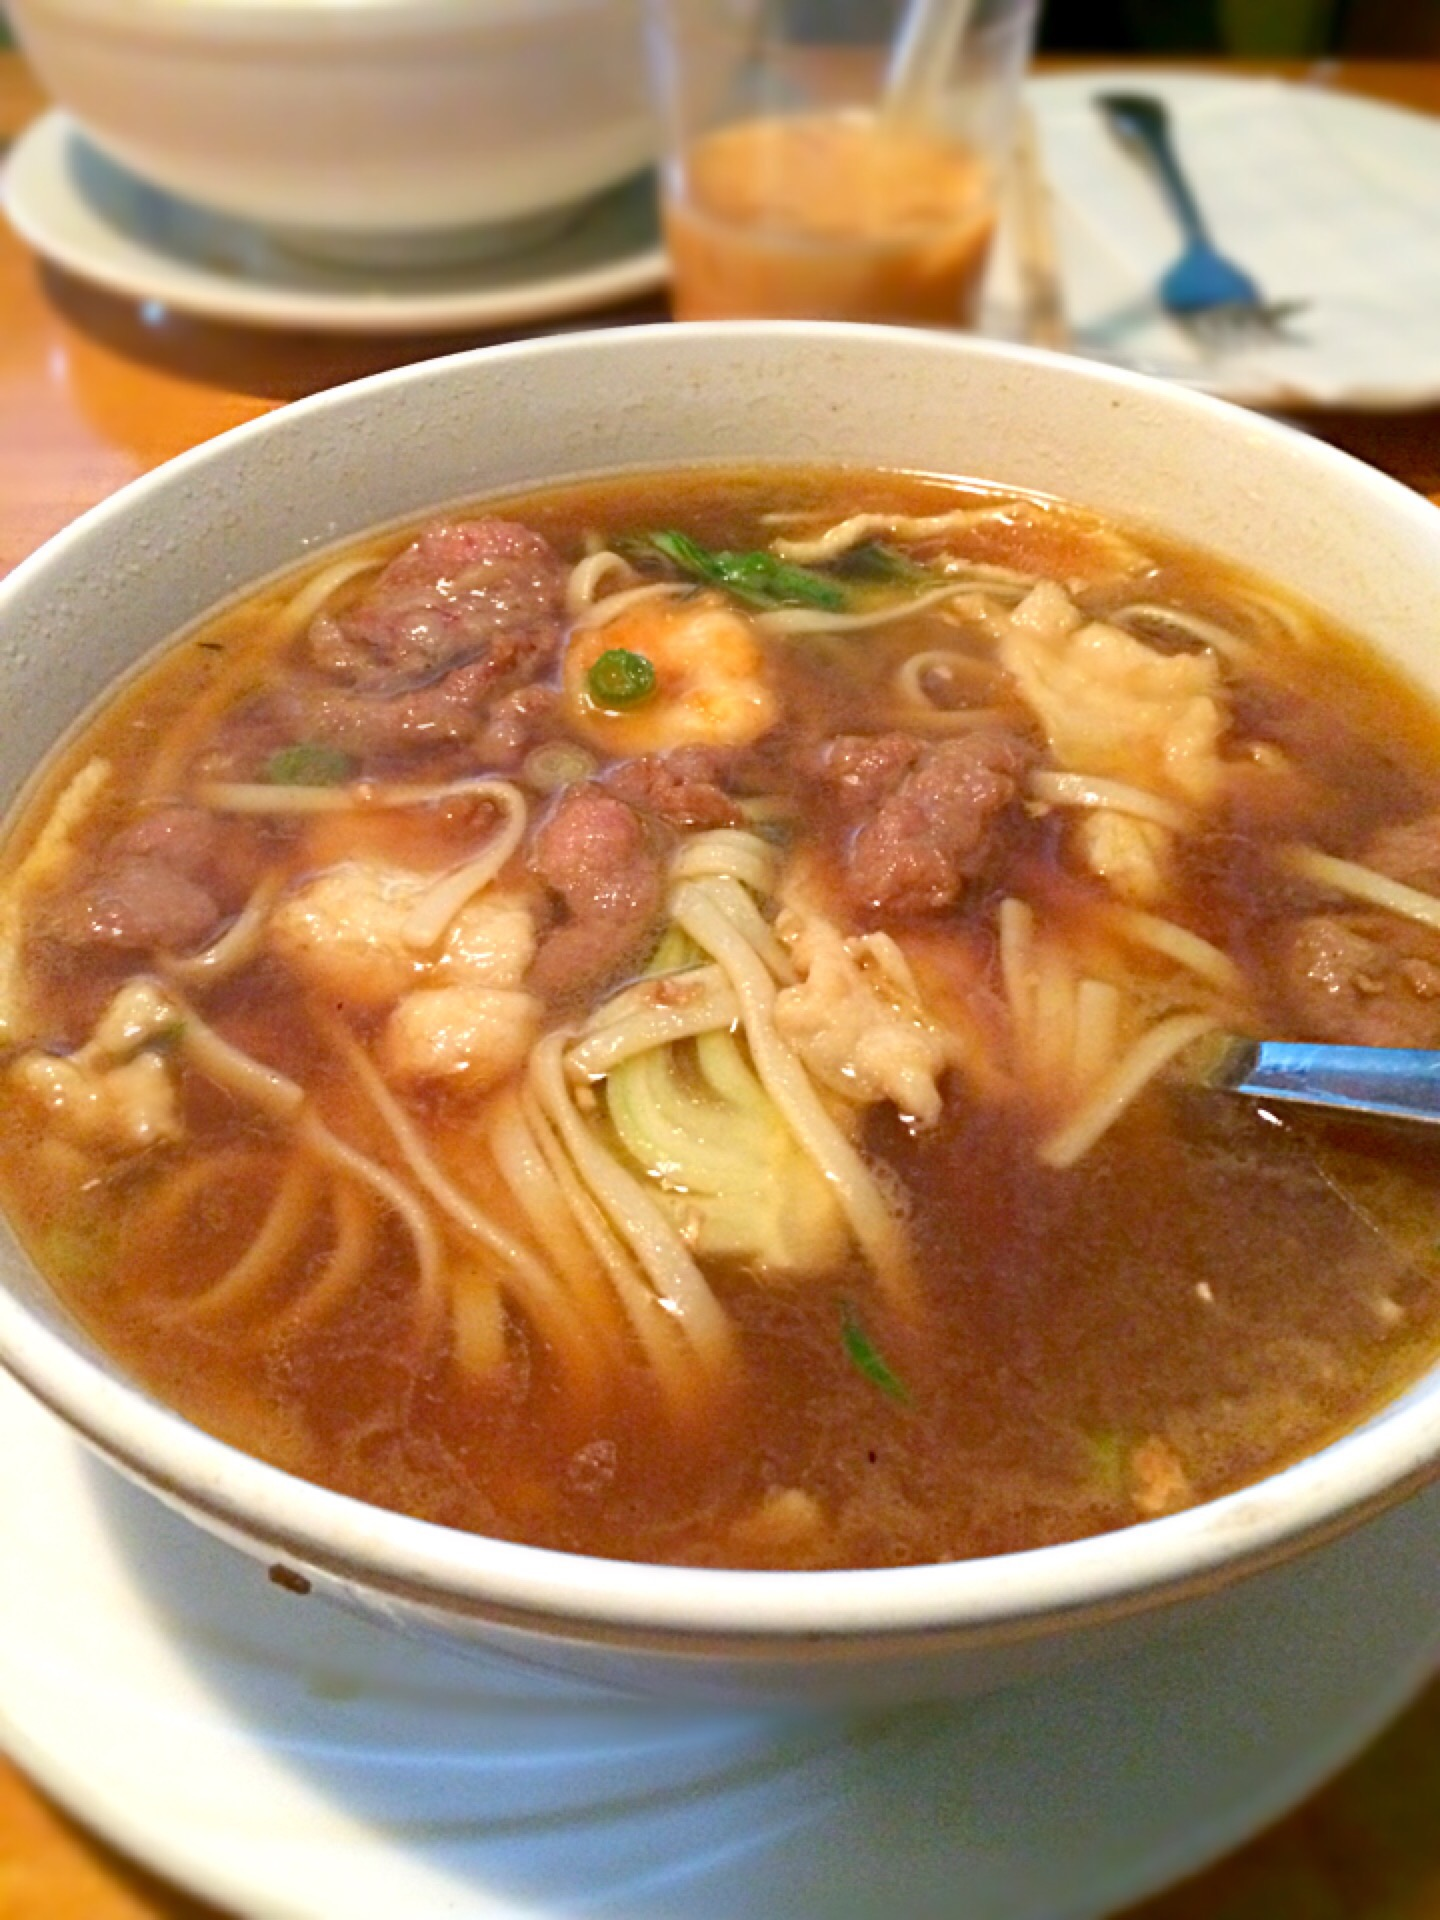 Beef and shrimp noodle soup